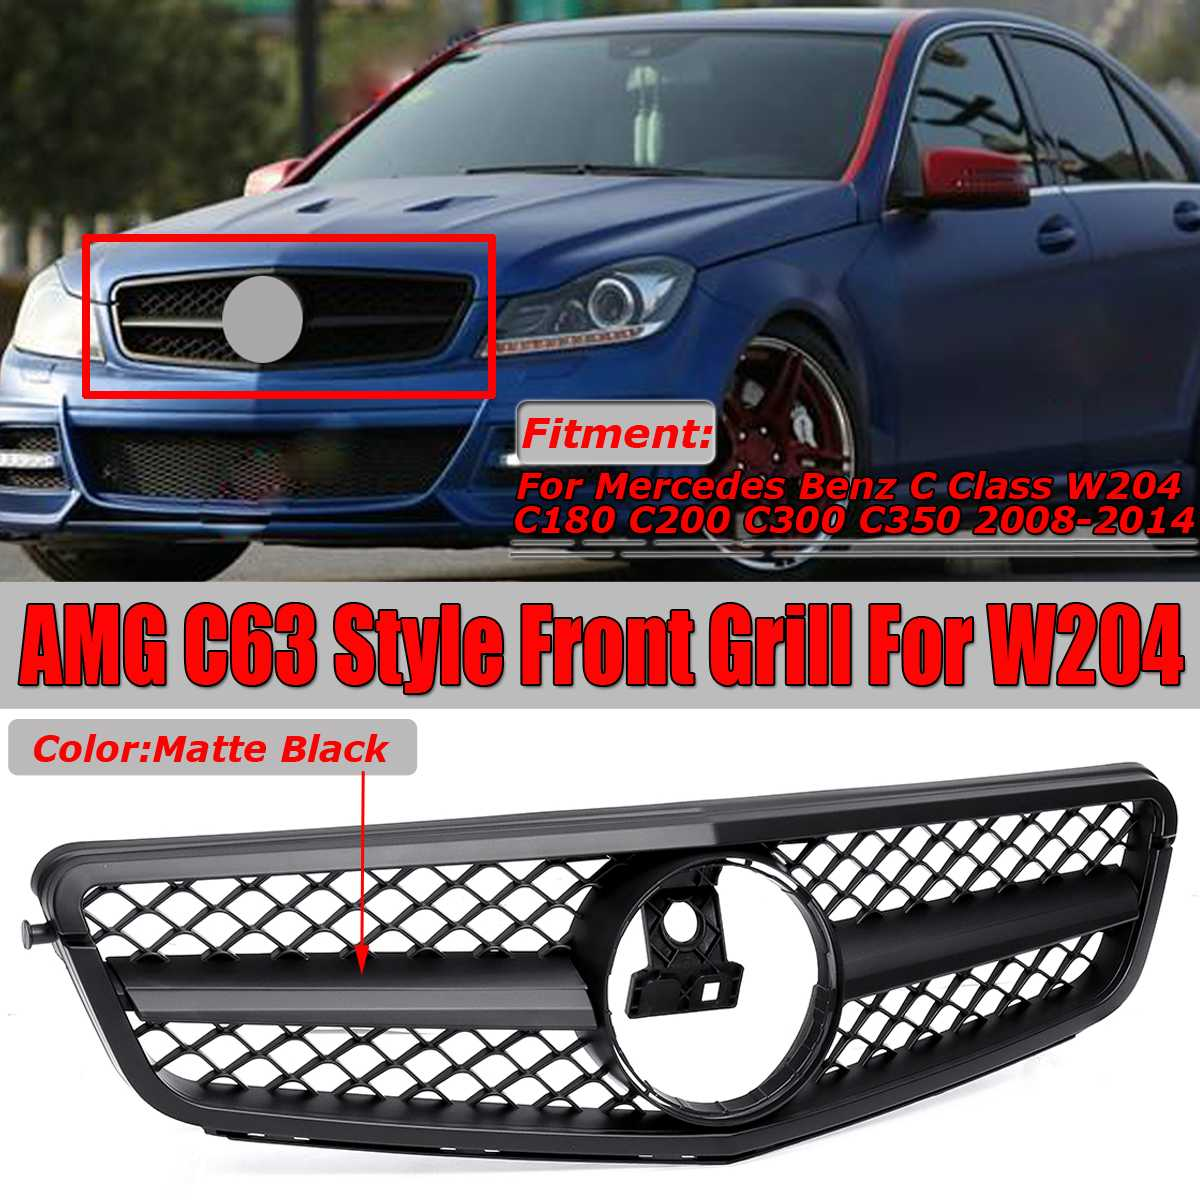 High Quality C63 For AMG Style Car Front Grille Grill For Mercedes For Benz C Class W204 C180 C200 C300 C350 08-14 Racing GrillsHigh Quality C63 For AMG Style Car Front Grille Grill For Mercedes For Benz C Class W204 C180 C200 C300 C350 08-14 Racing Grills